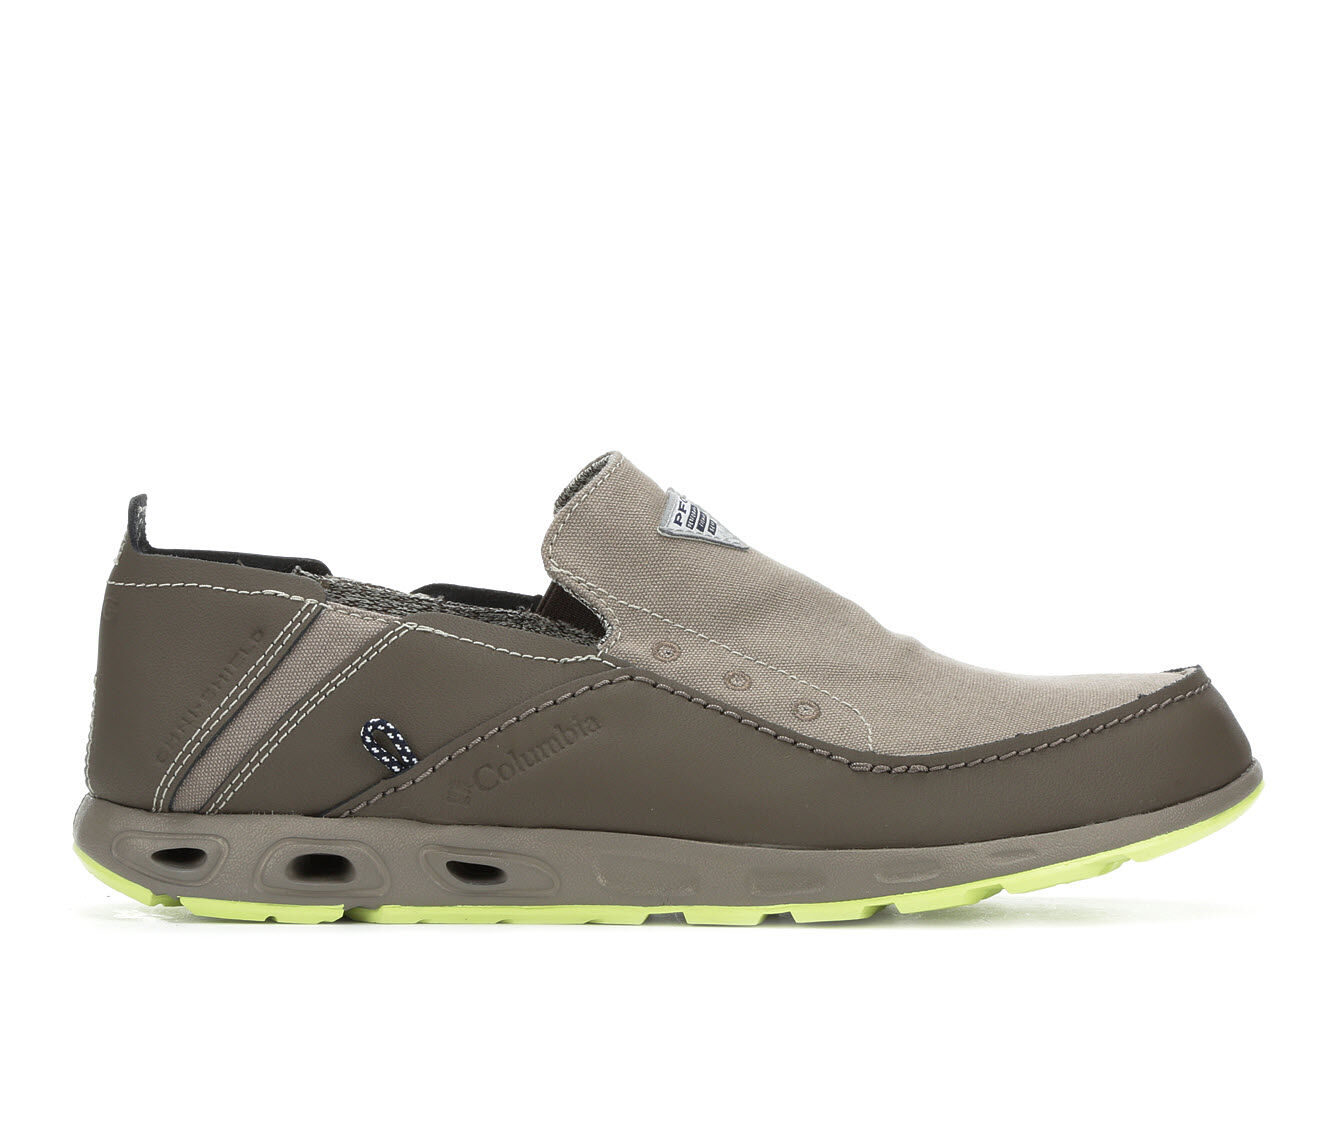 Men's Columbia Bahama Vent PFG Casual Shoes Taupe